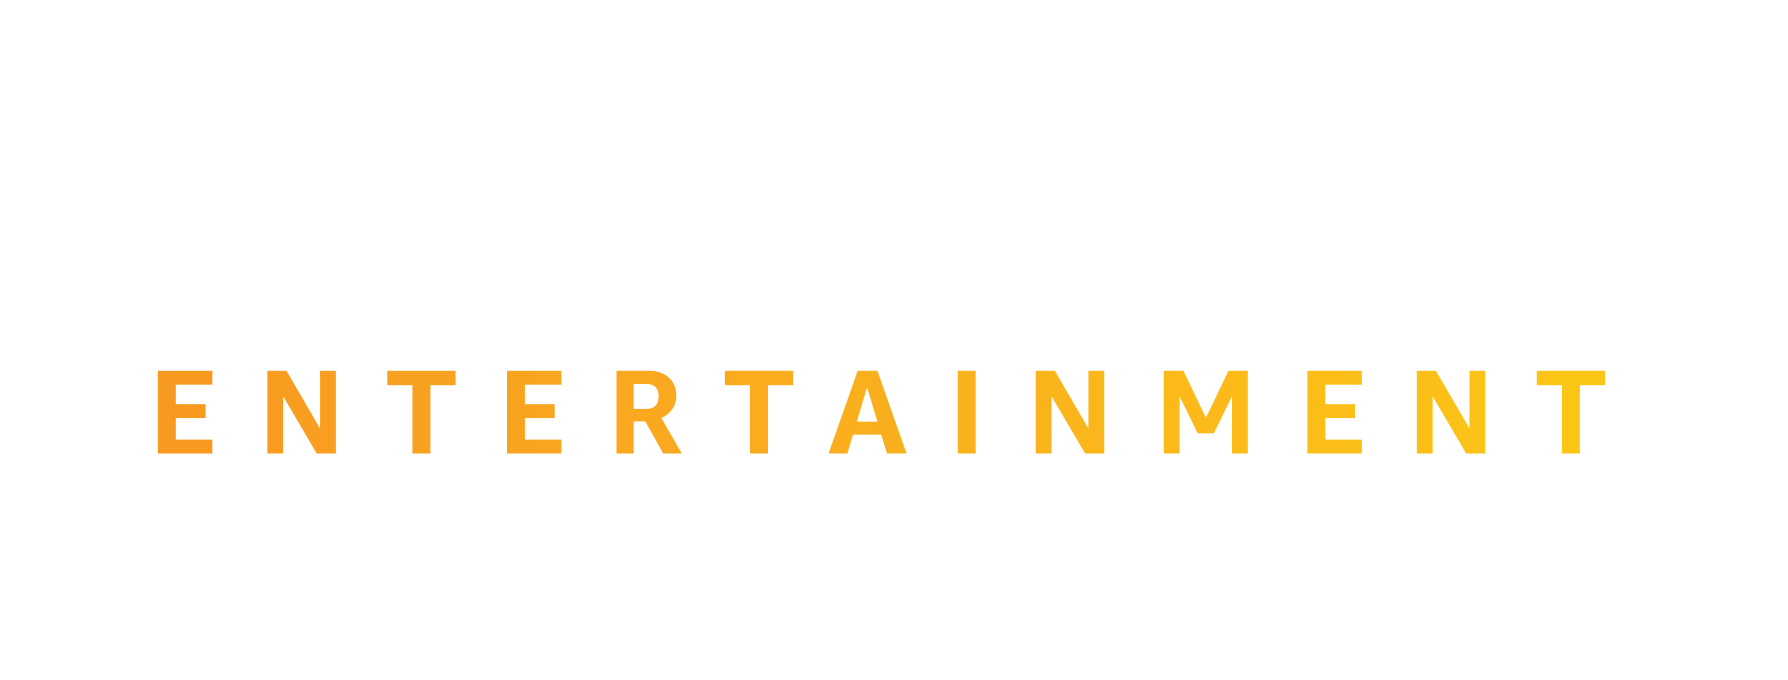 Howard University Joins with Amazon Studios to Launch Howard Entertainment